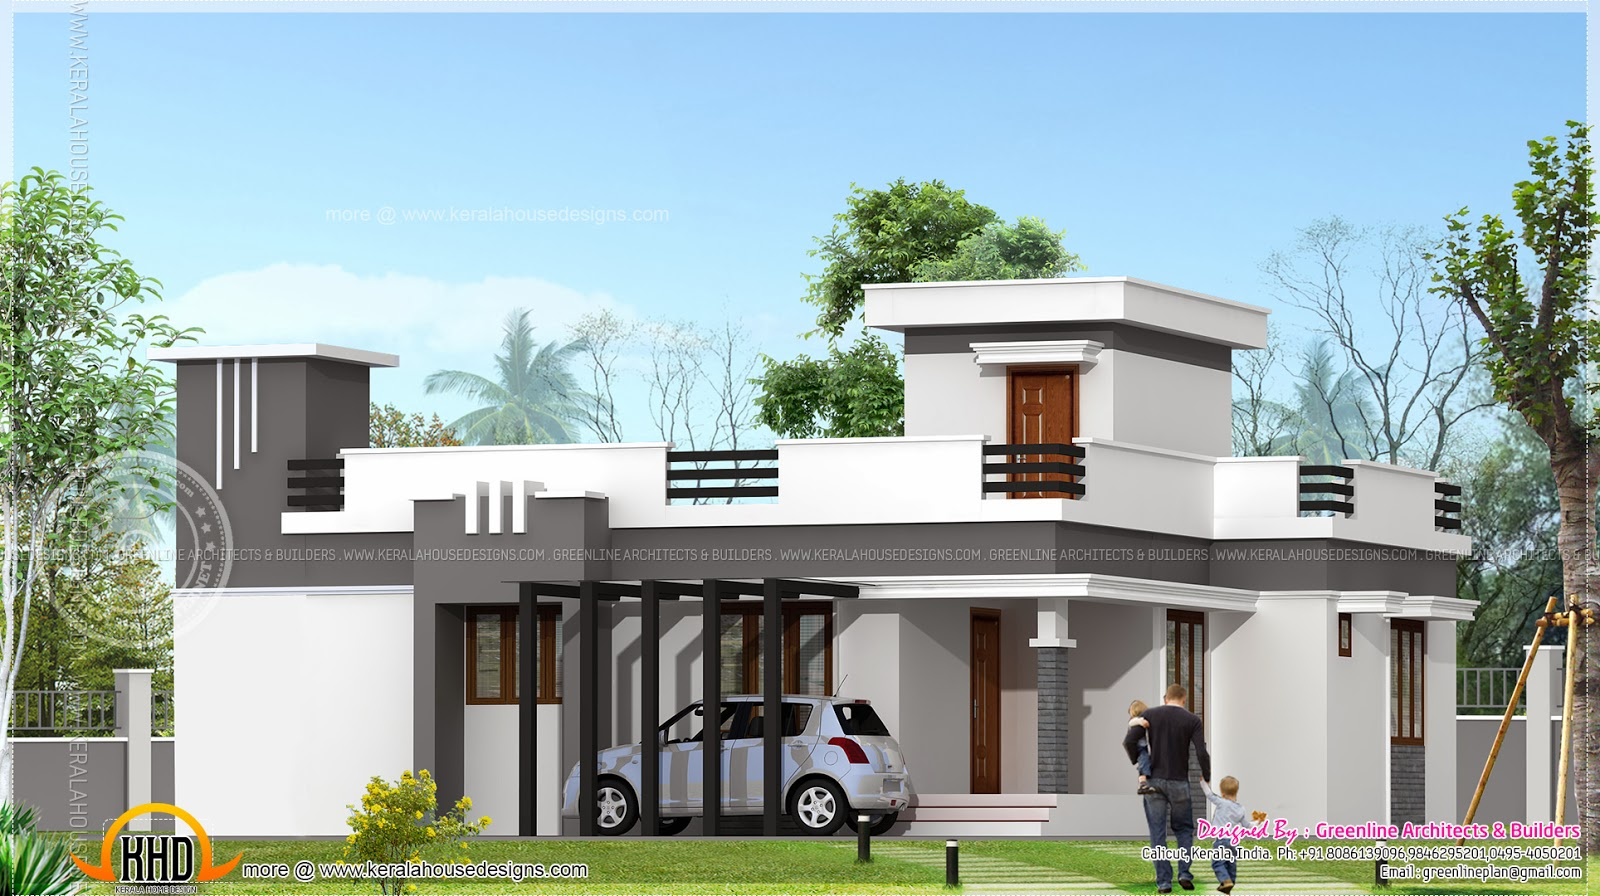 Small contemporary home in 1200 sq feet indian house plans Home plan for 1200 sq ft indian style